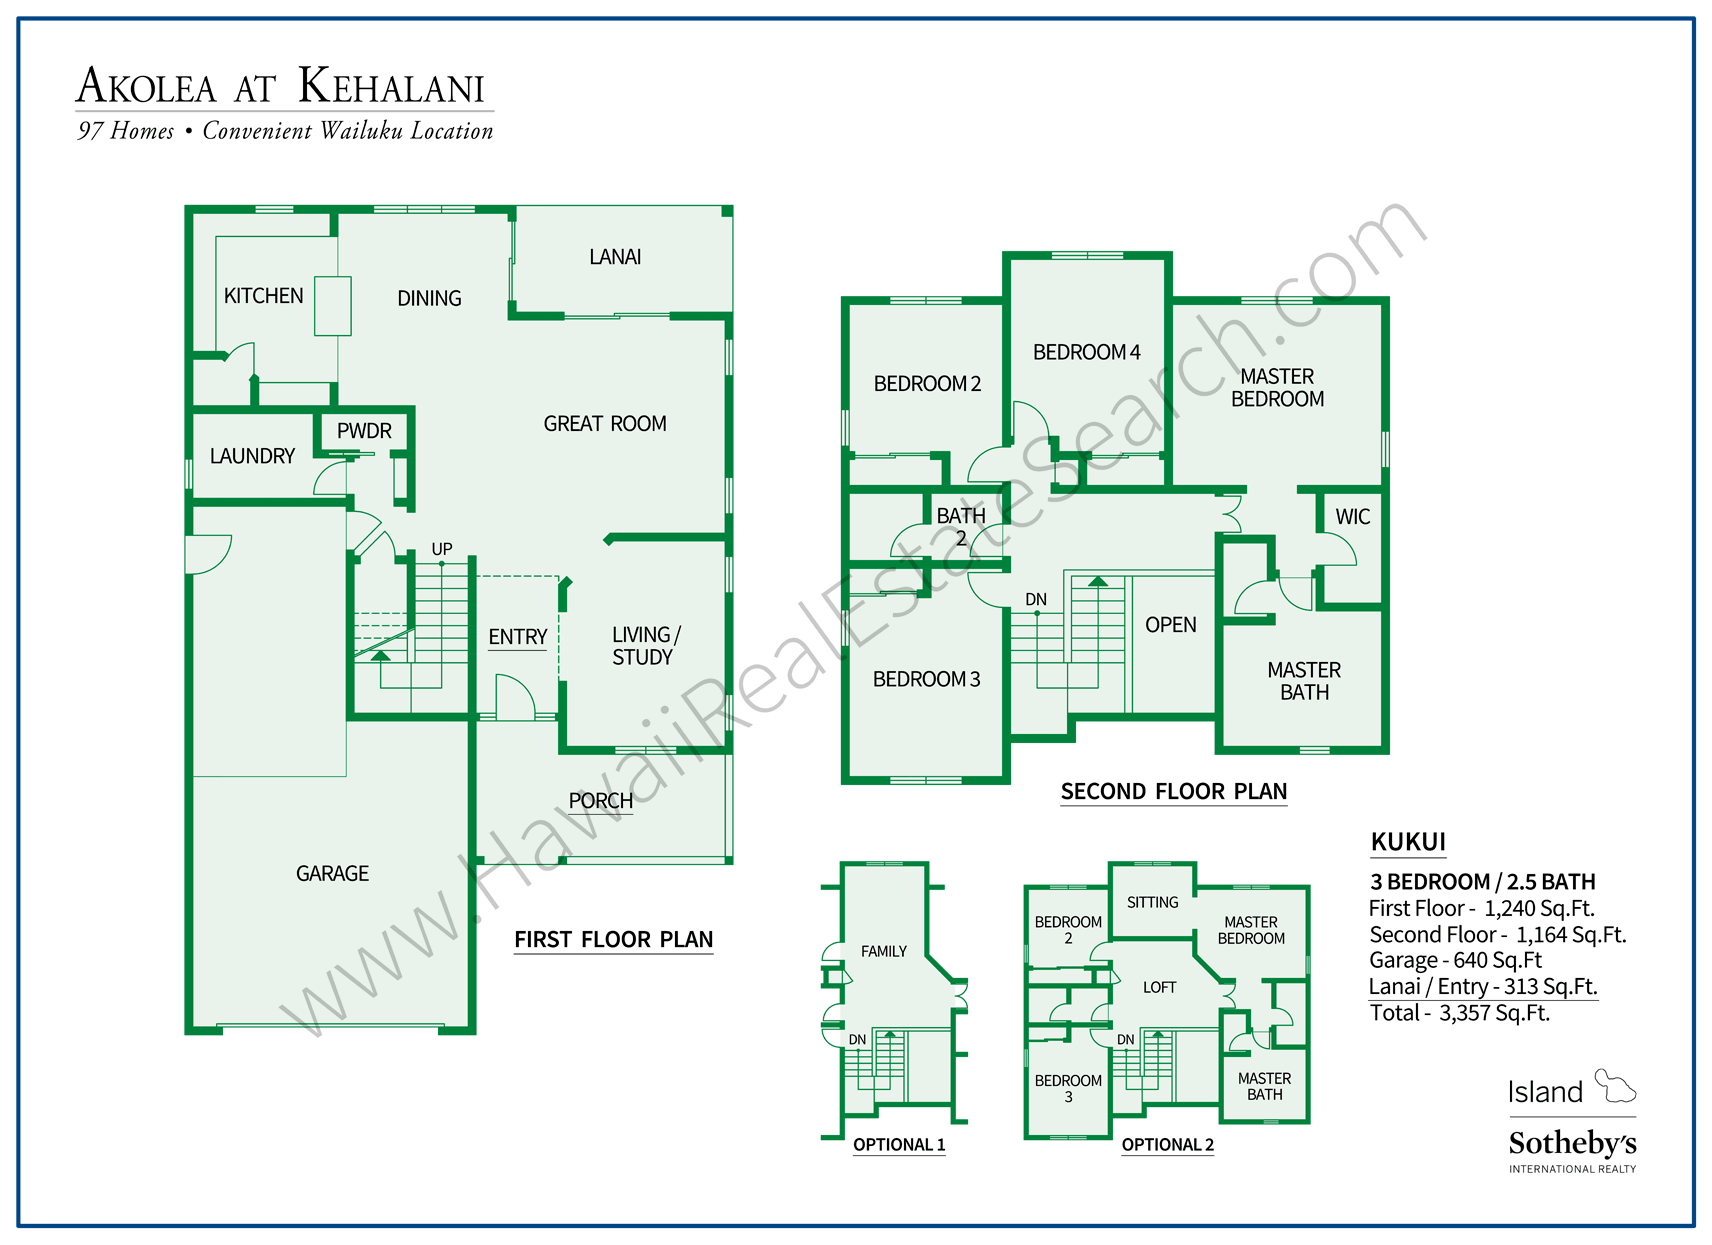 Akolea at Kehalani Floorplan 3